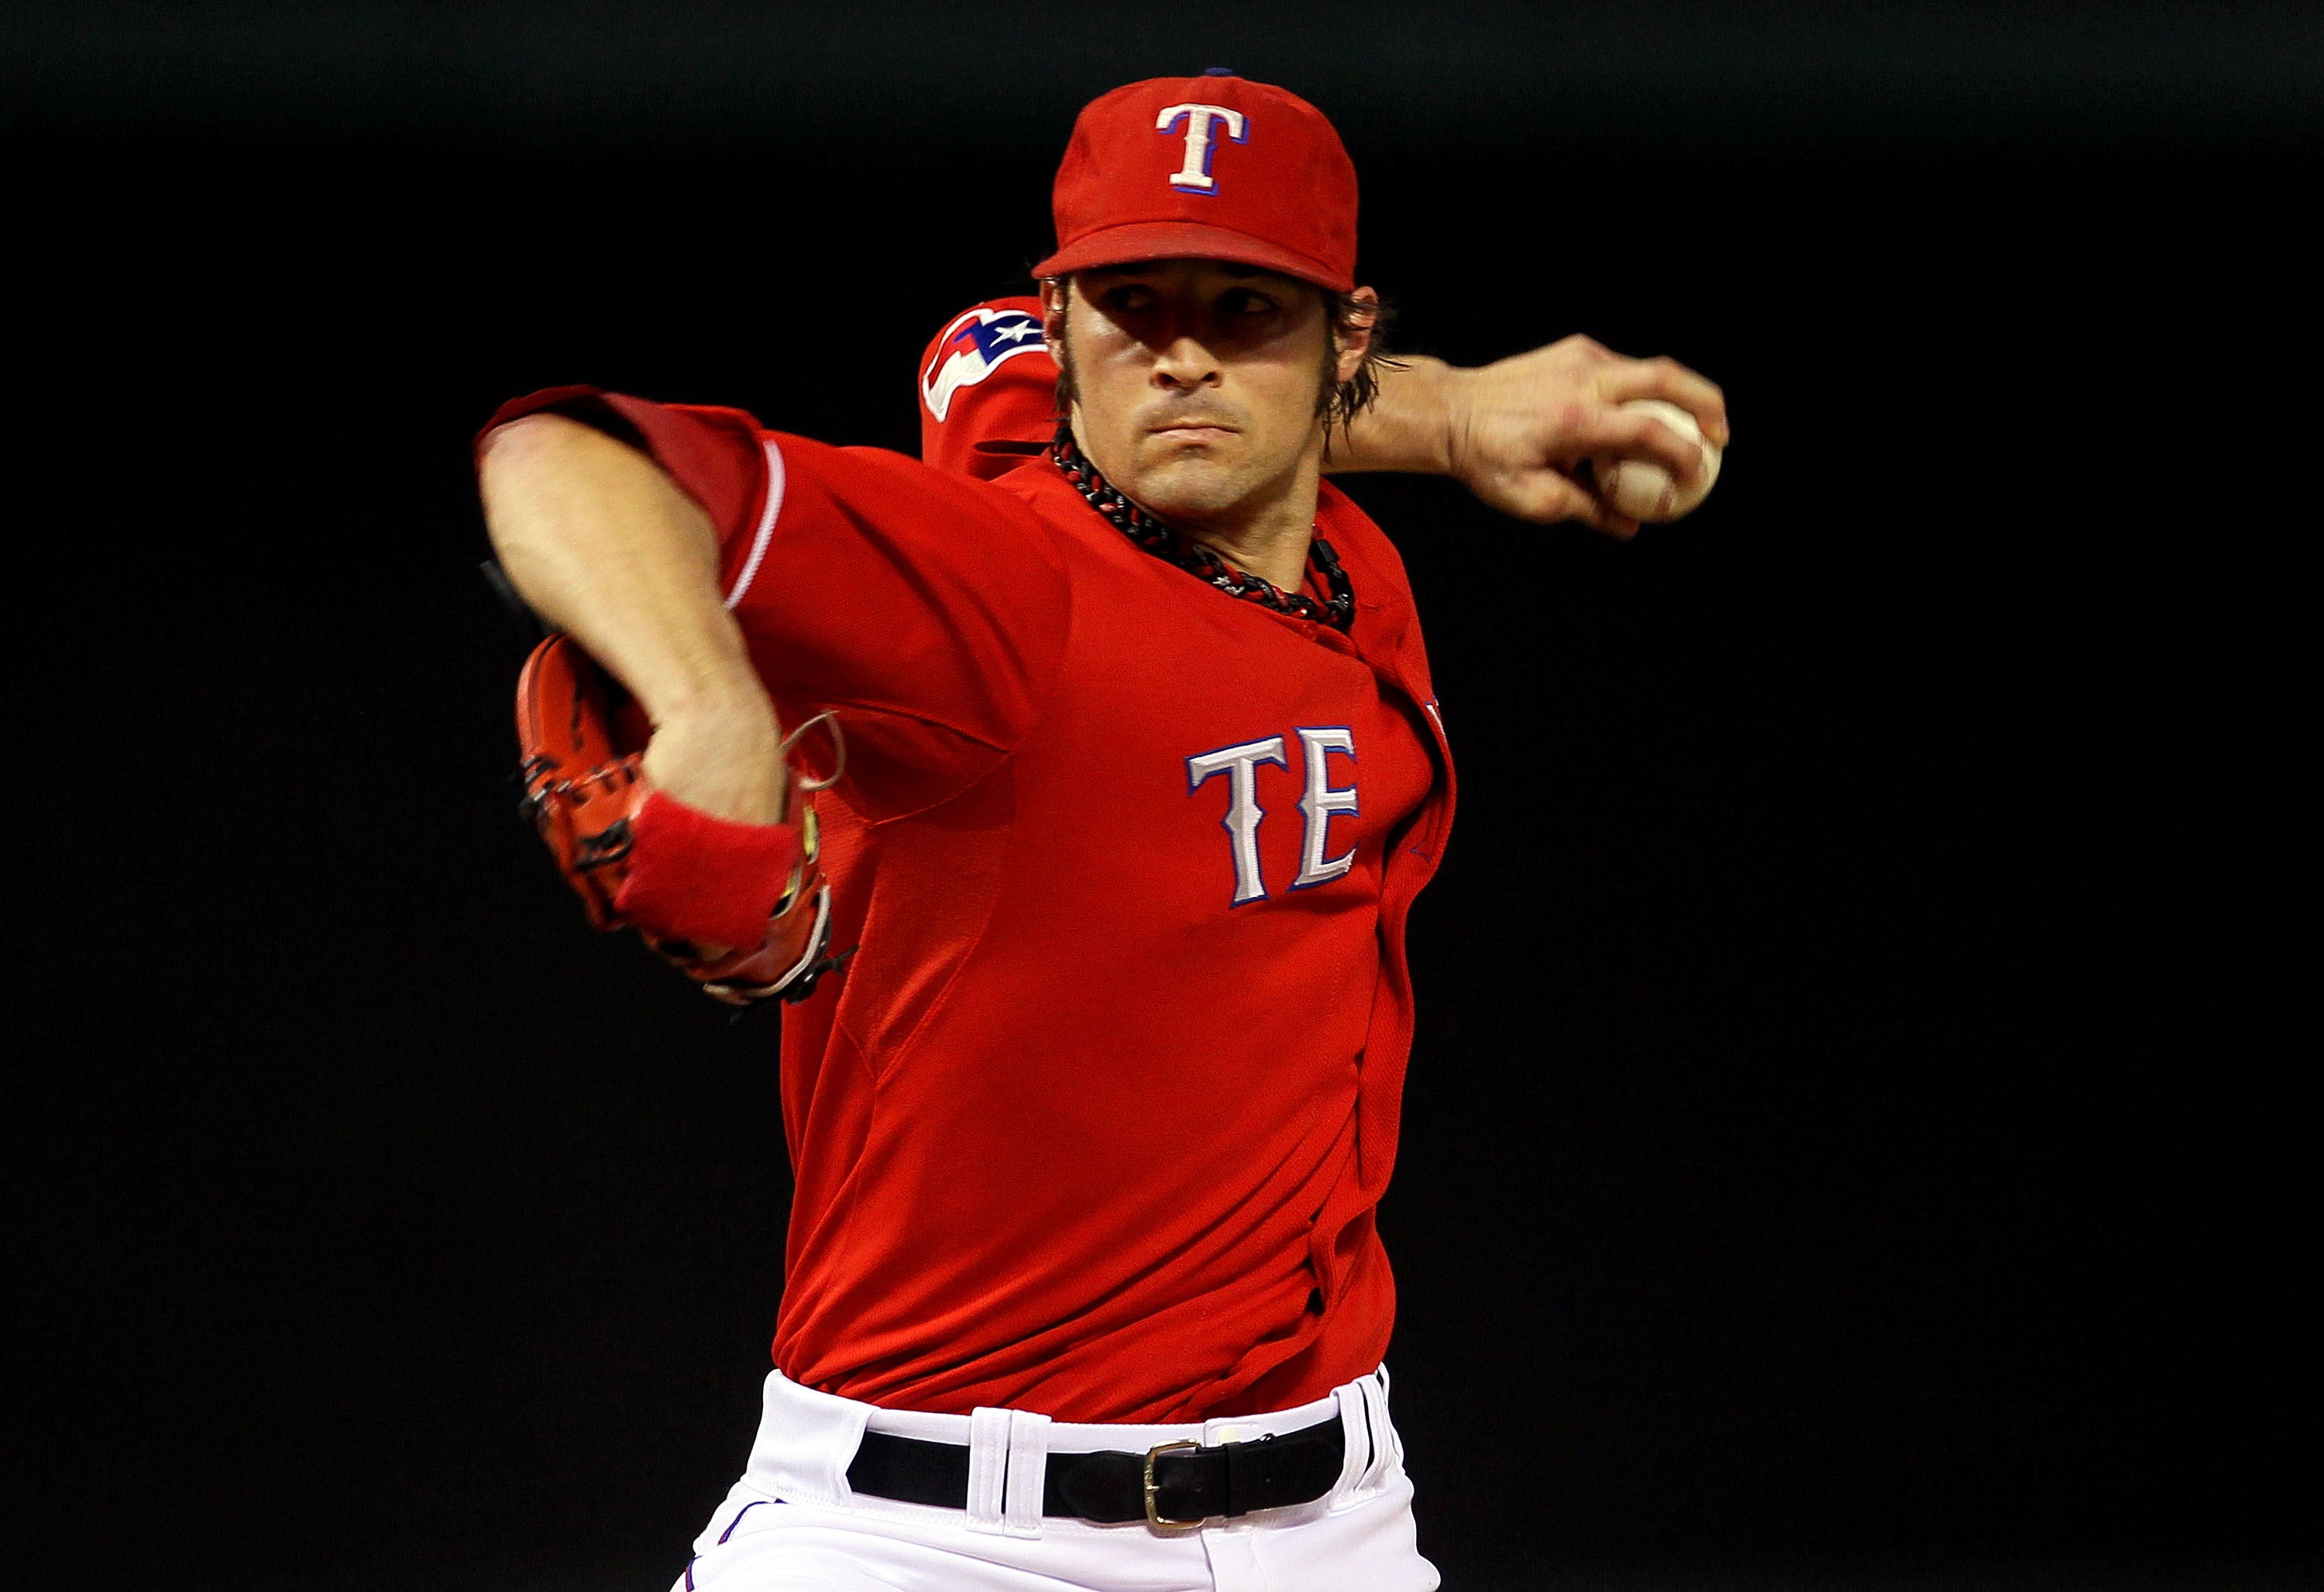 ARLINGTON, TX - OCTOBER 15: C.J. Wilson #36 of the Texas Rangers pitches against the New York Yankees in Game One of the ALCS during the 2010 MLB Playoffs at Rangers Ballpark in Arlington on October 15, 2010 in Arlington, Texas.  (Photo by Stephen Dunn/Ge